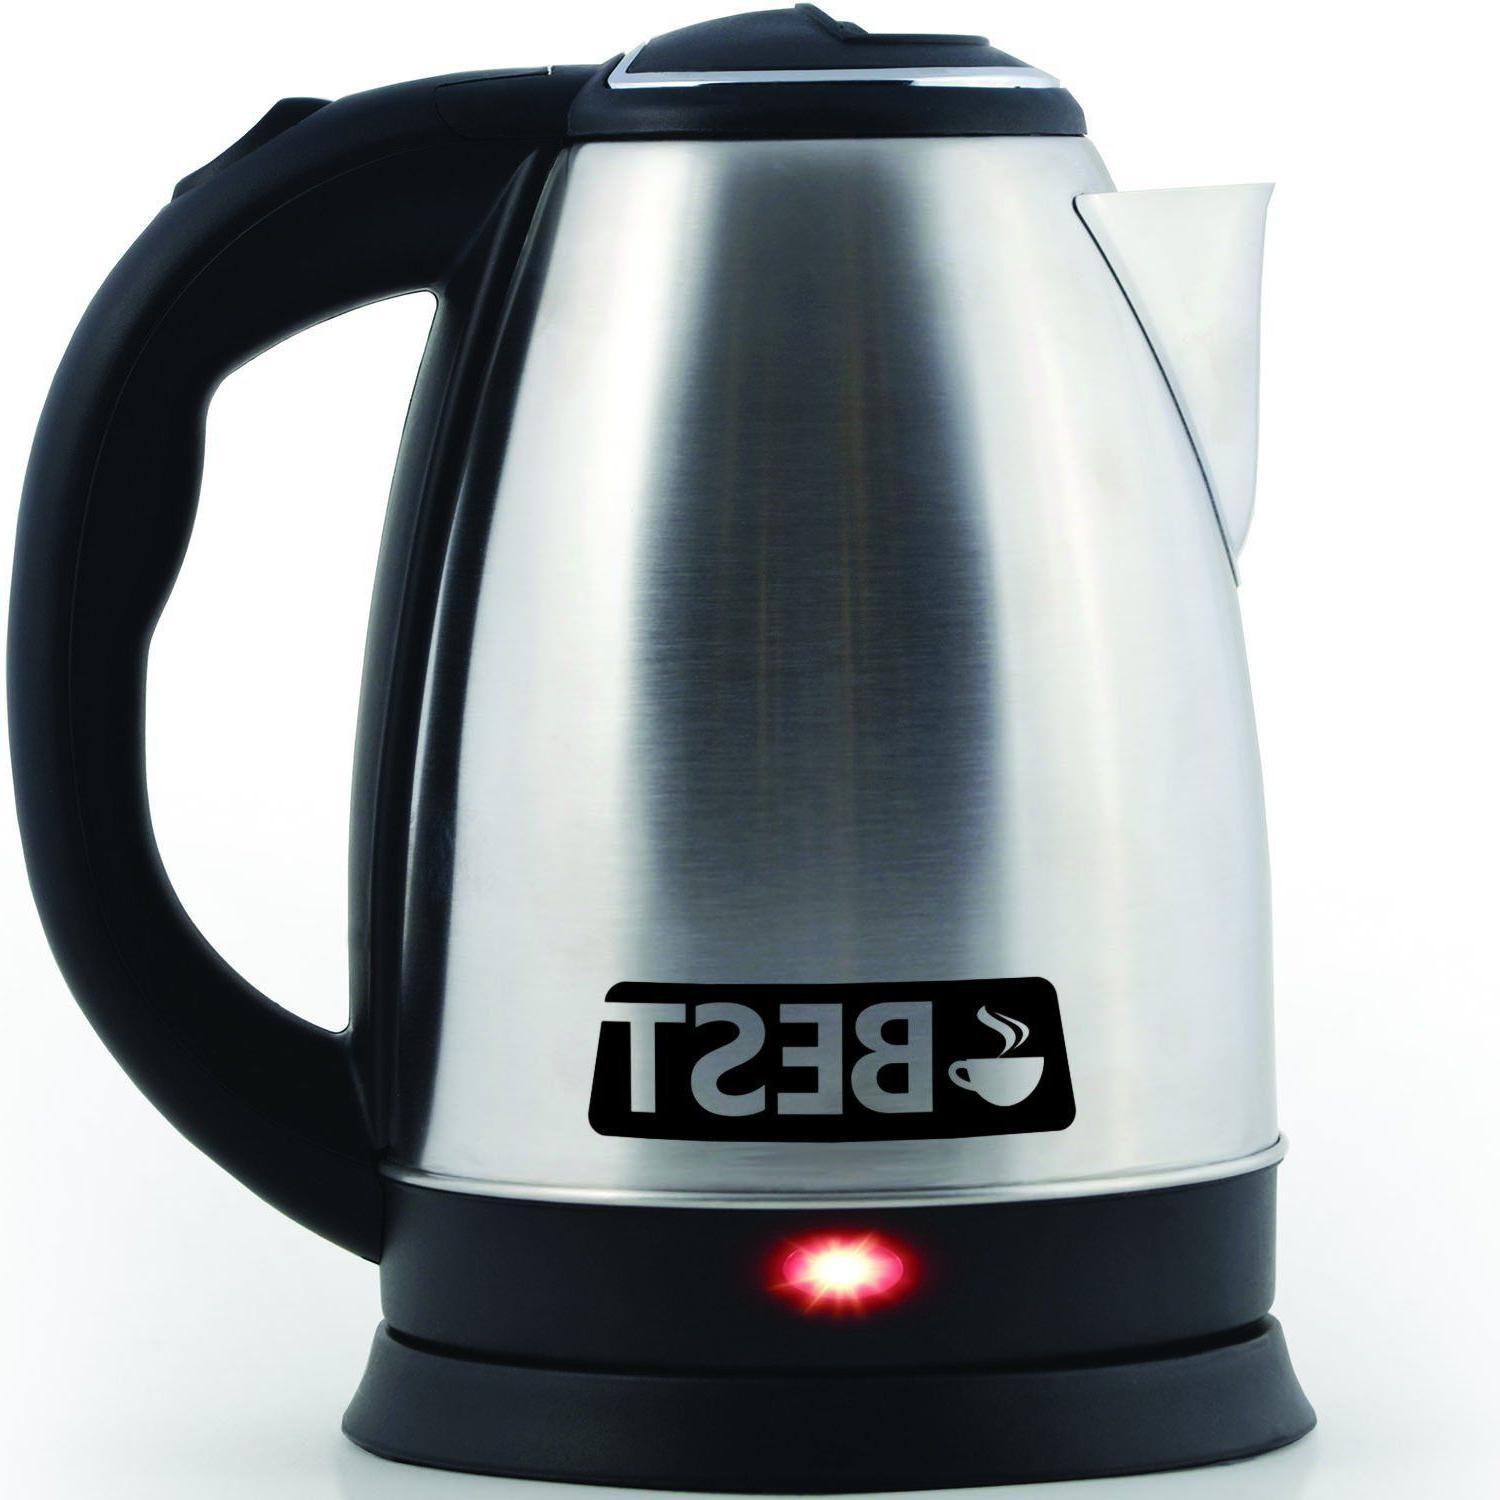 Best Kettle Cordless - HUGE 2.0L Capacity!